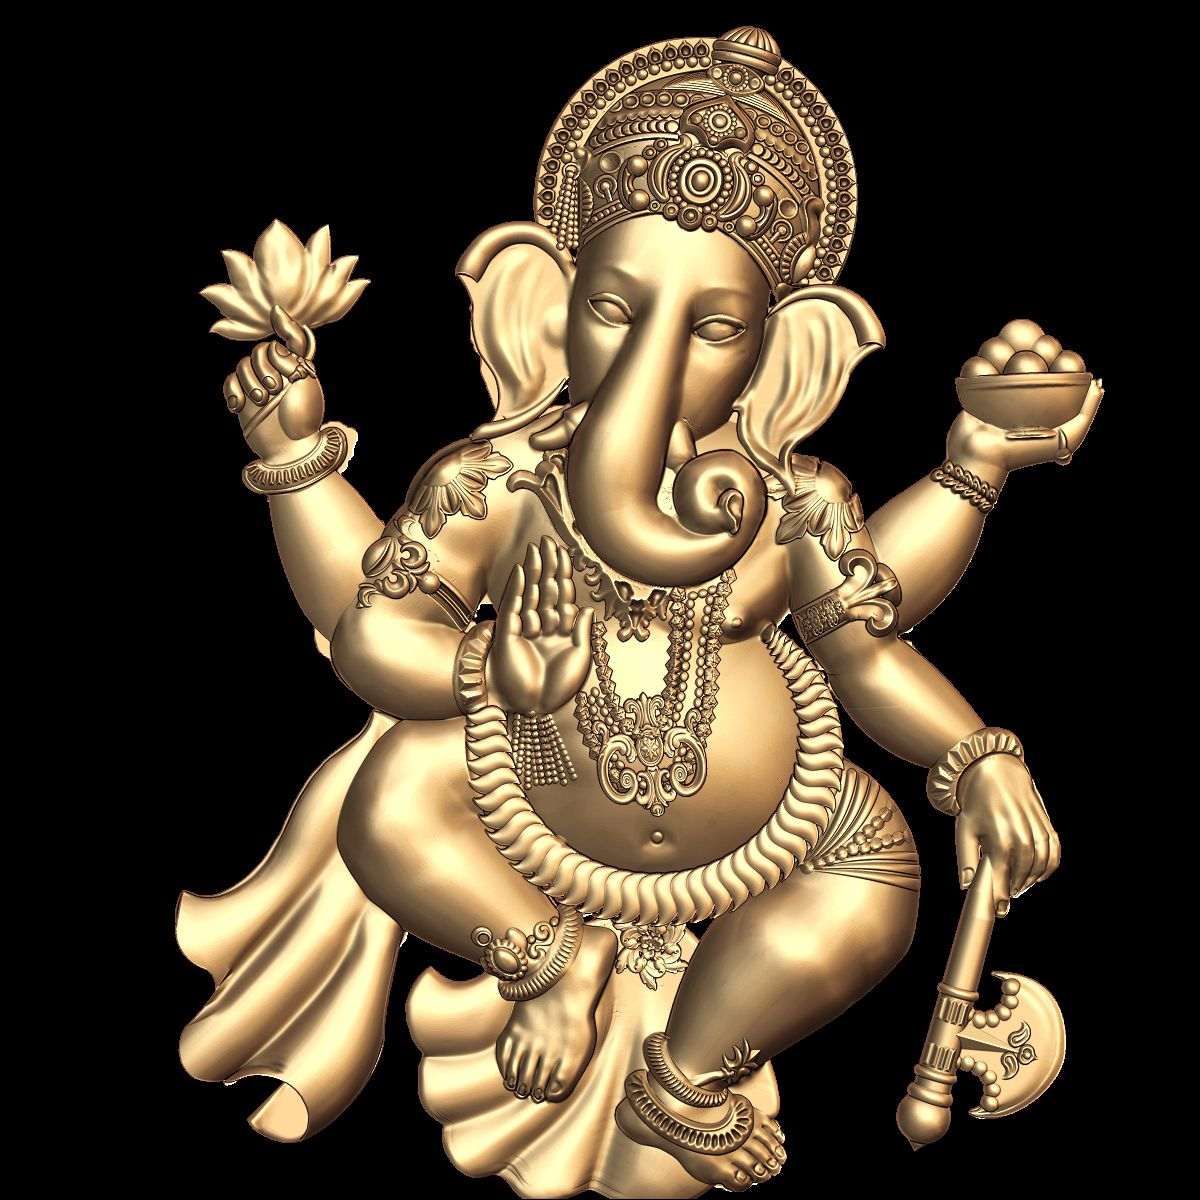 3d stl model for cnc lord ganesha 10 3d stl models for cnc